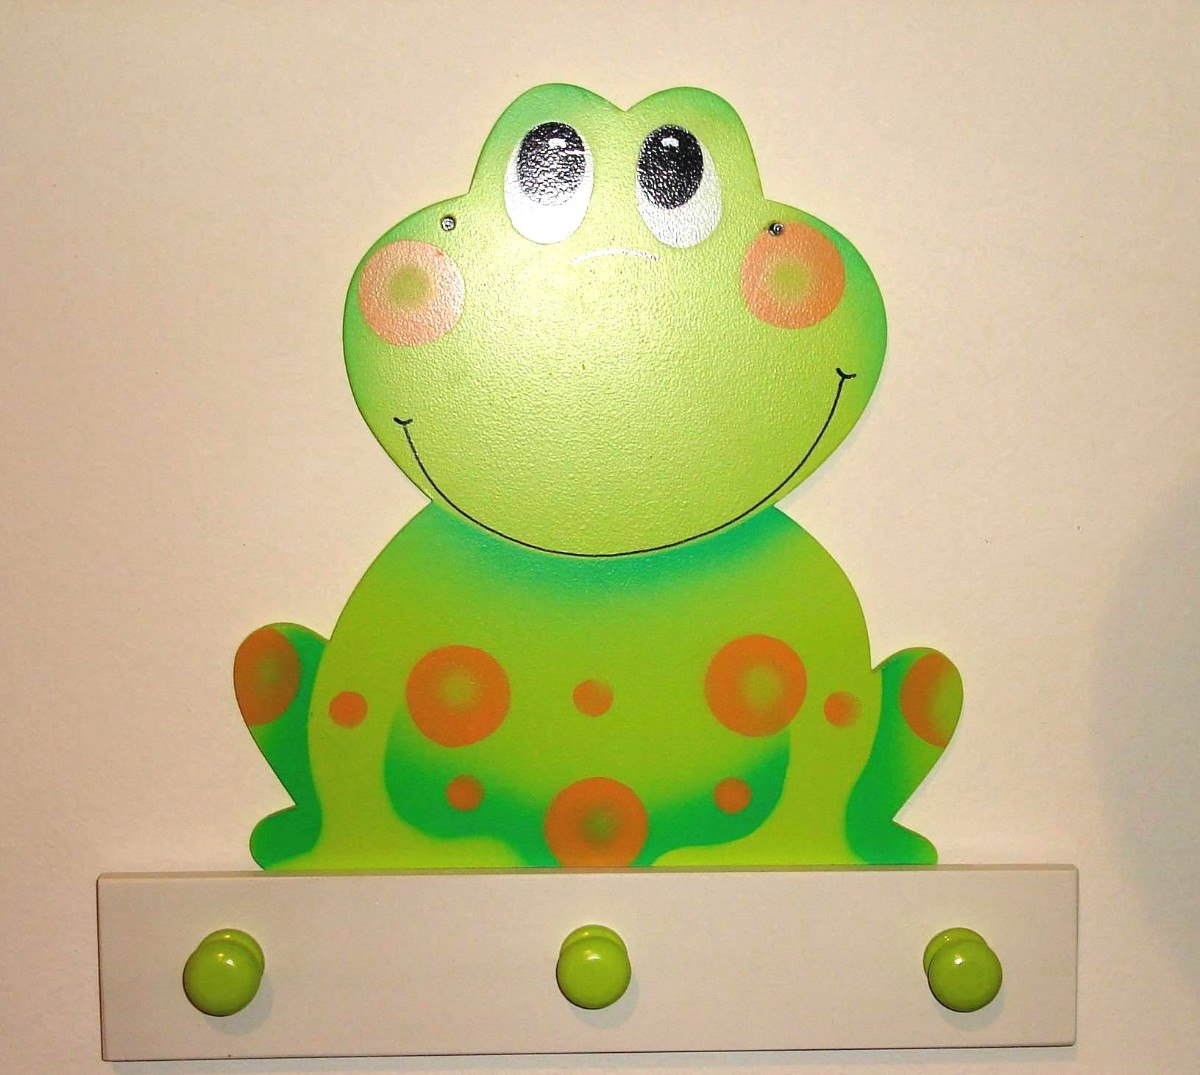 Perchas de pared infantiles triple gancho perchero de - Percheros infantiles de pared ...